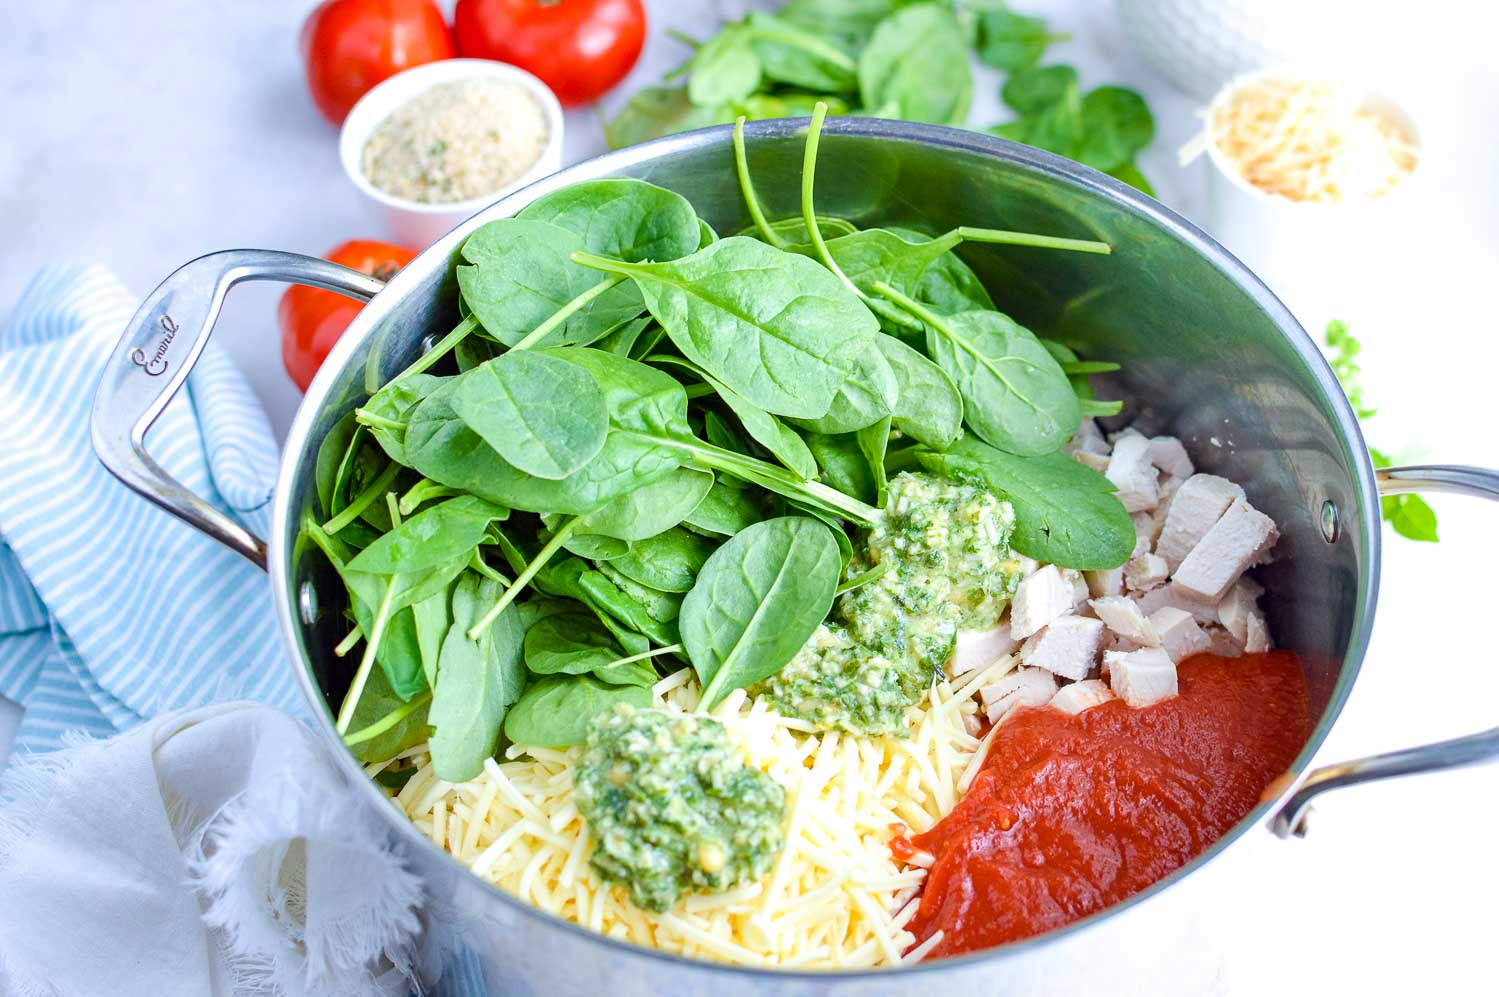 A stainless steel pot with ingredients in it like spinach, tomatoes, cheese, pesto and chicken with extra ingredients around it.